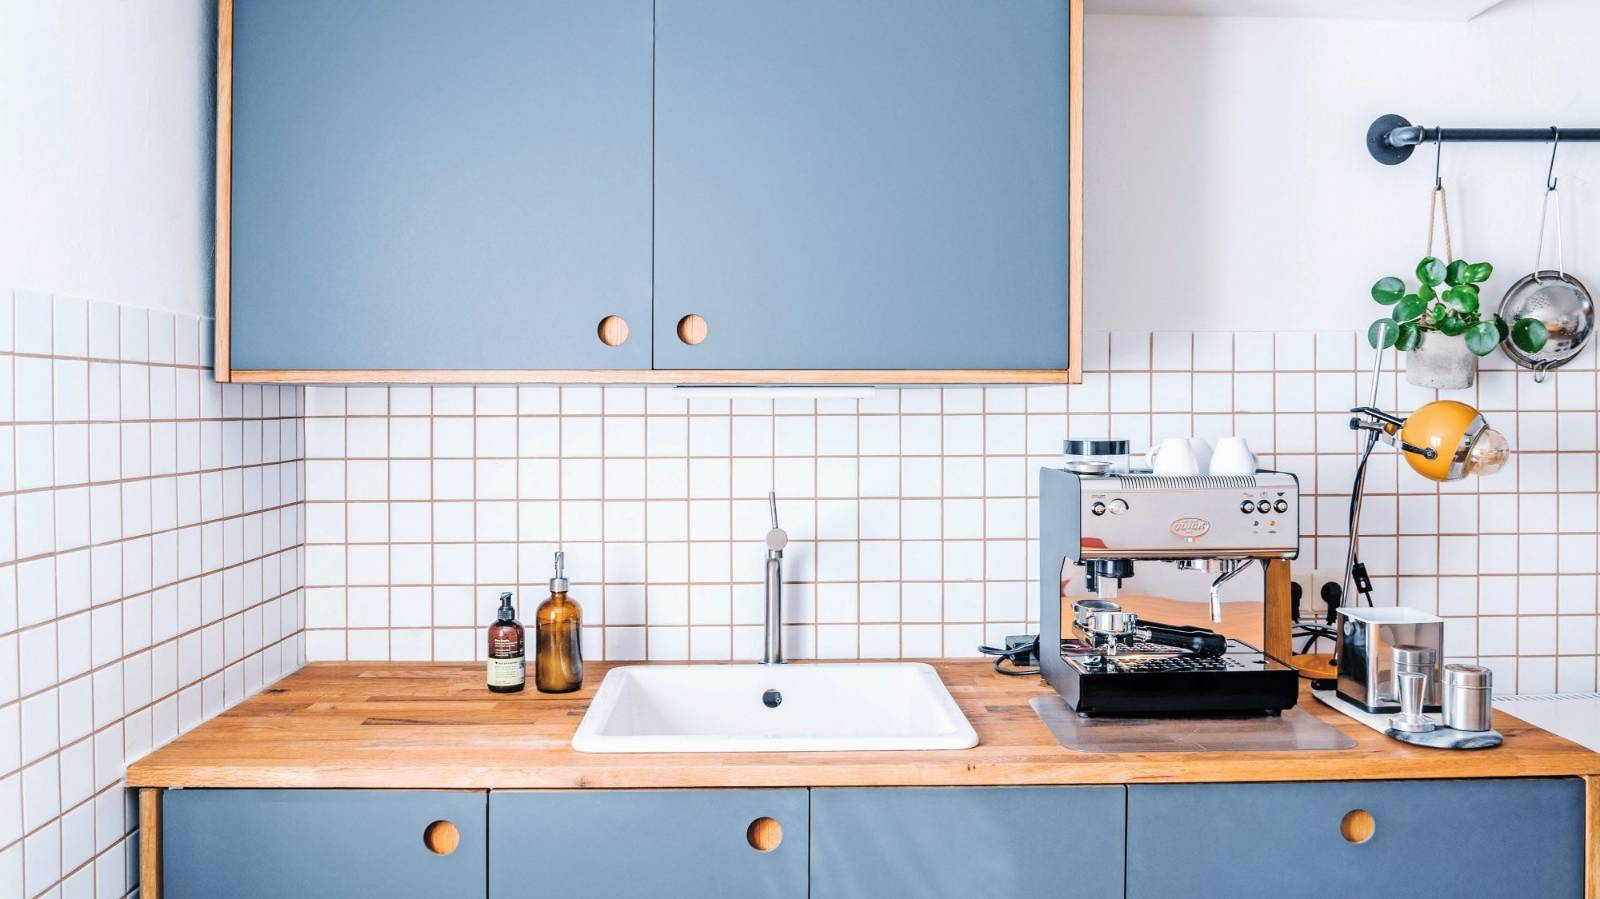 So you want to reno your kitchen?